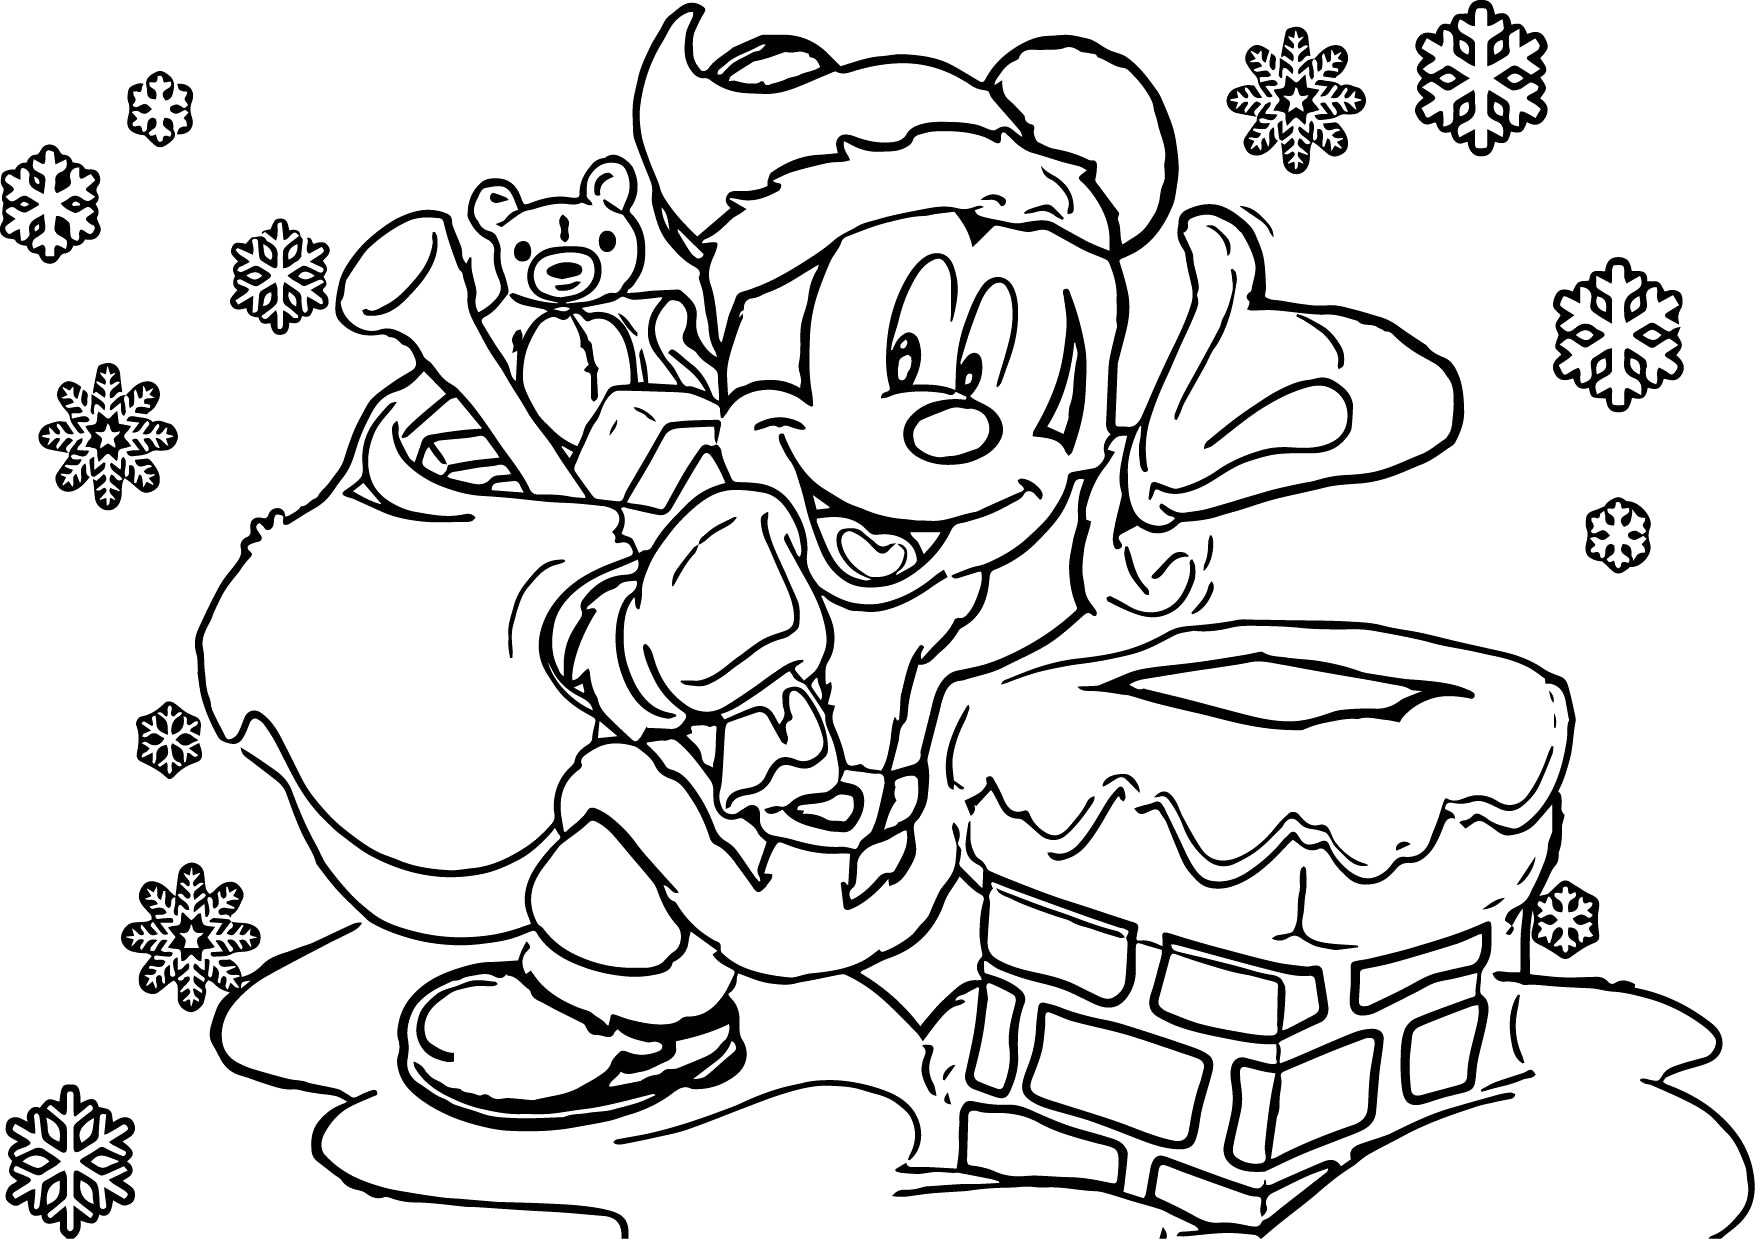 Merry Xmas Coloring Pages With Minions Christmas Download 5 N Happy Childrens